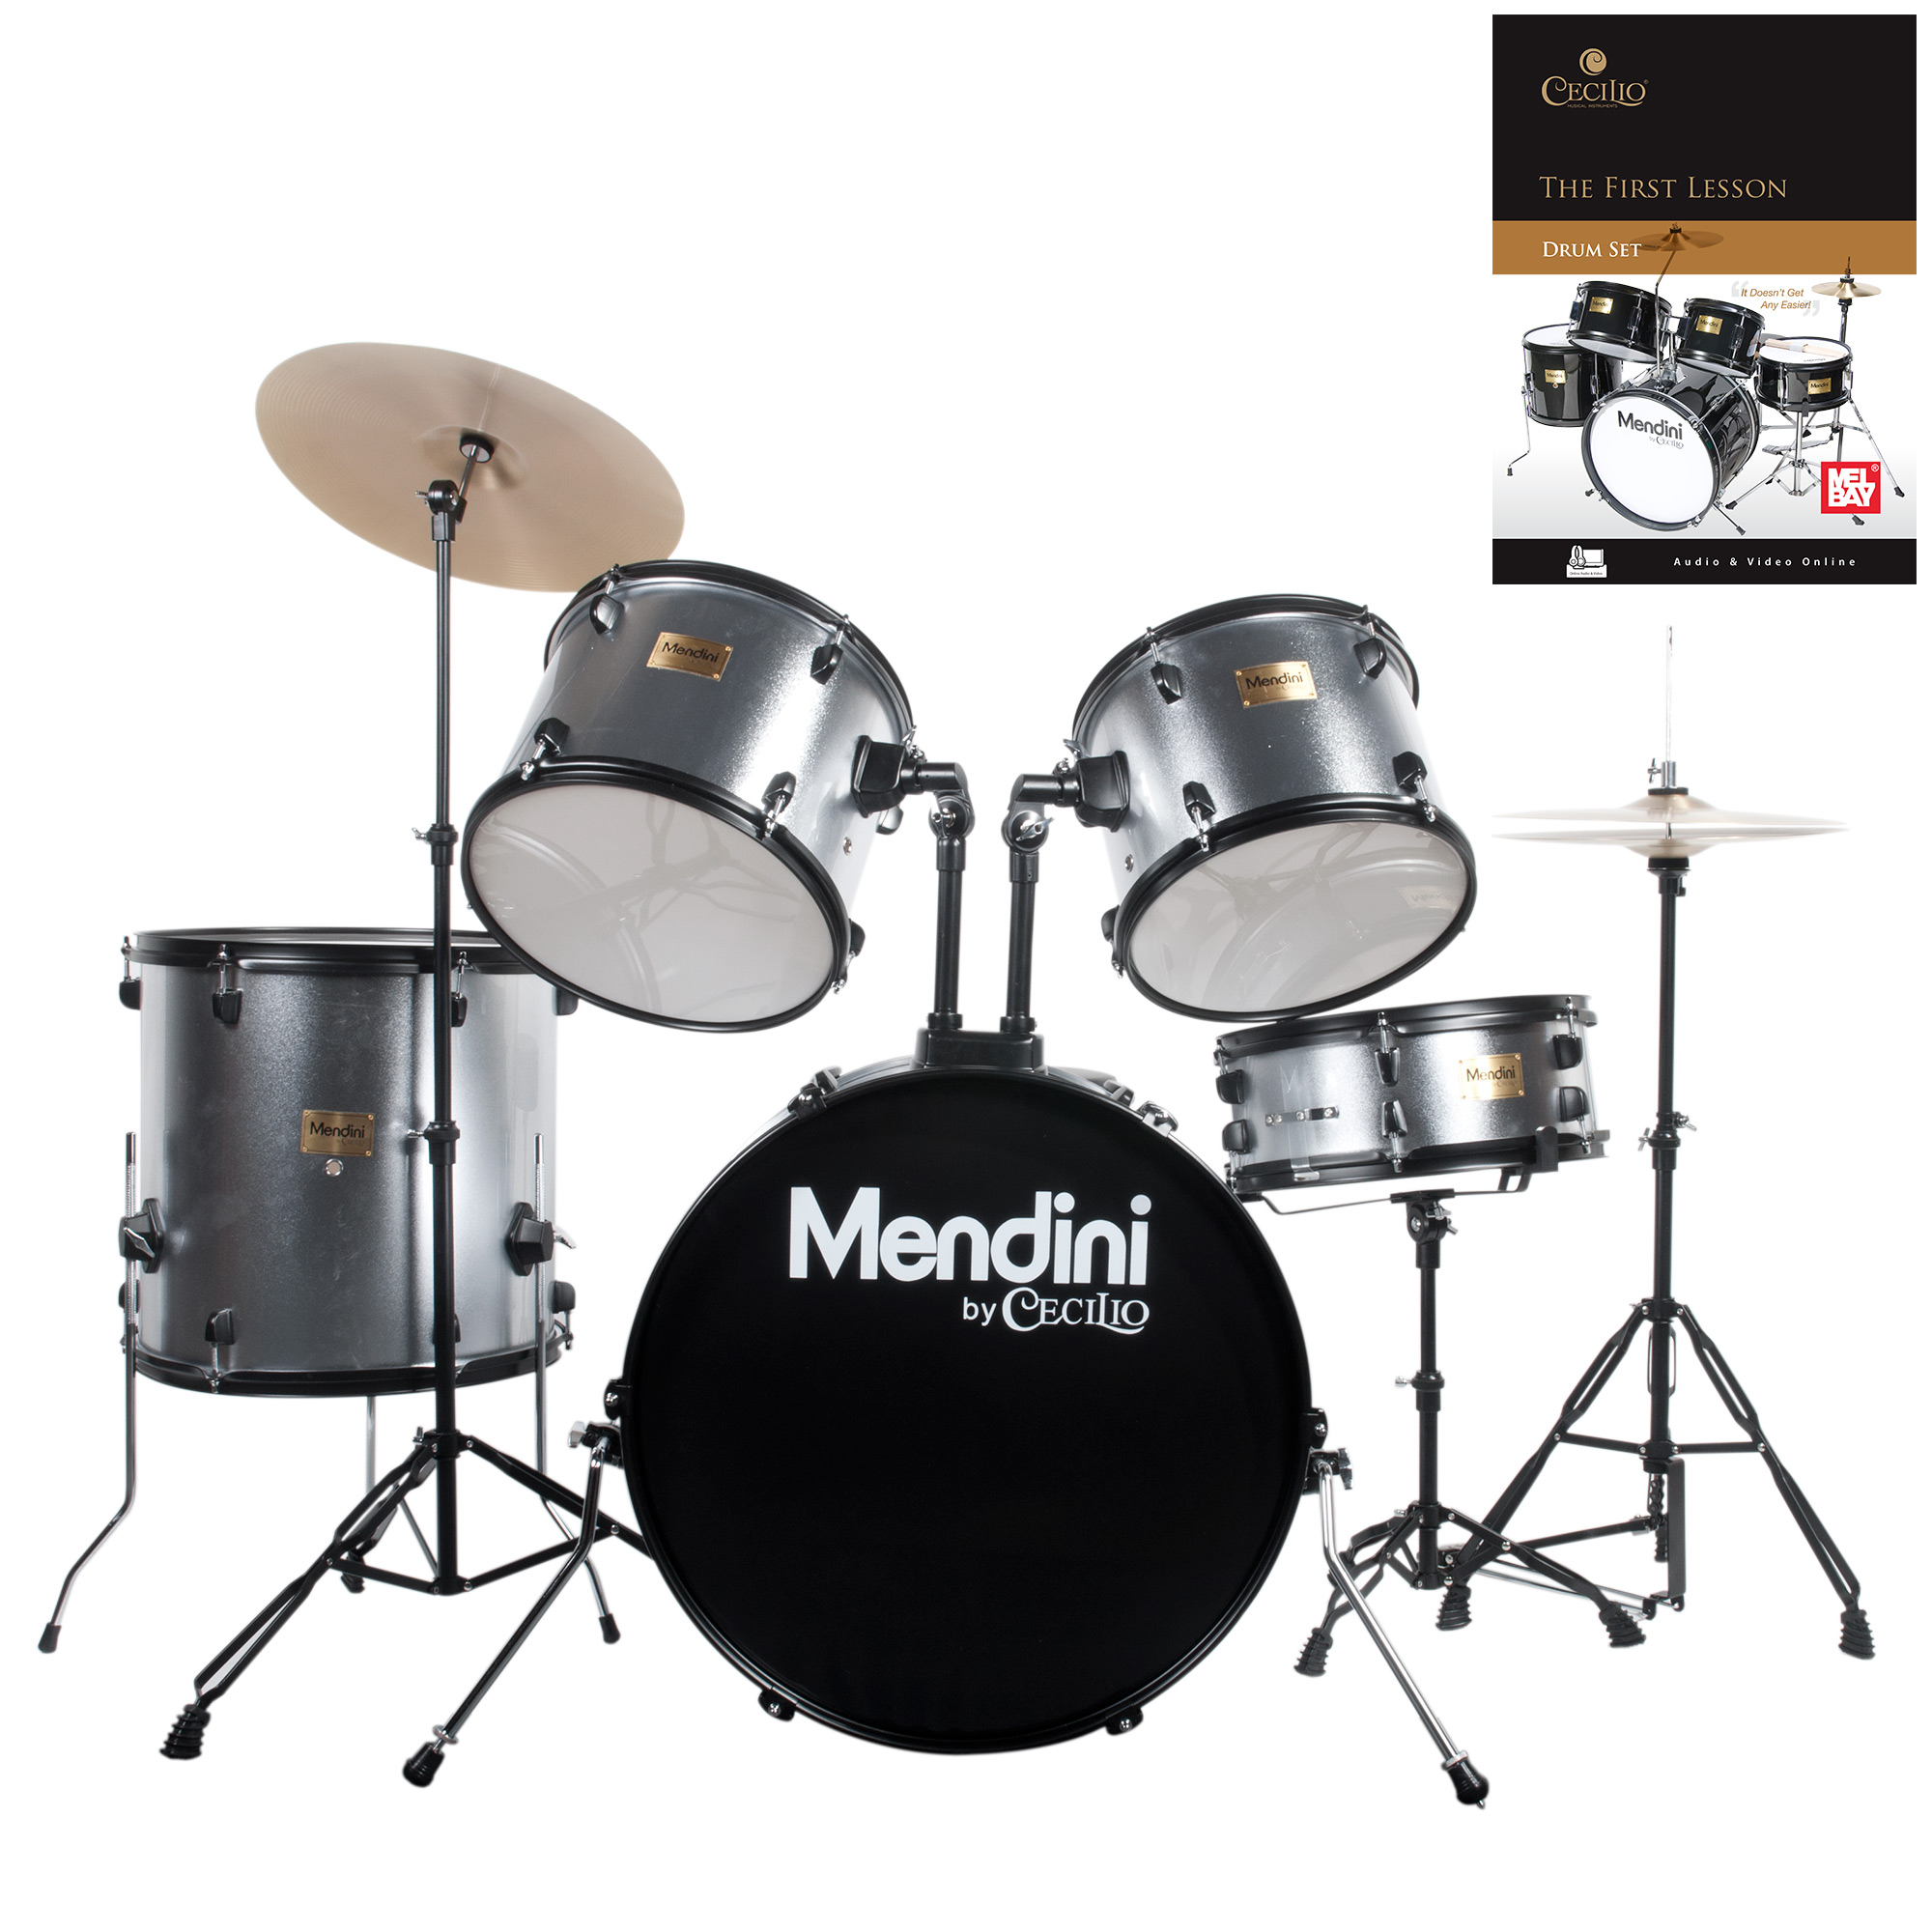 Mendini by Cecilio Complete Full Size 5-Piece Adult Drum Set w/ Cymbals Pedal Throne Sticks, Lesson Book, Metallic Silver MDS80-SR